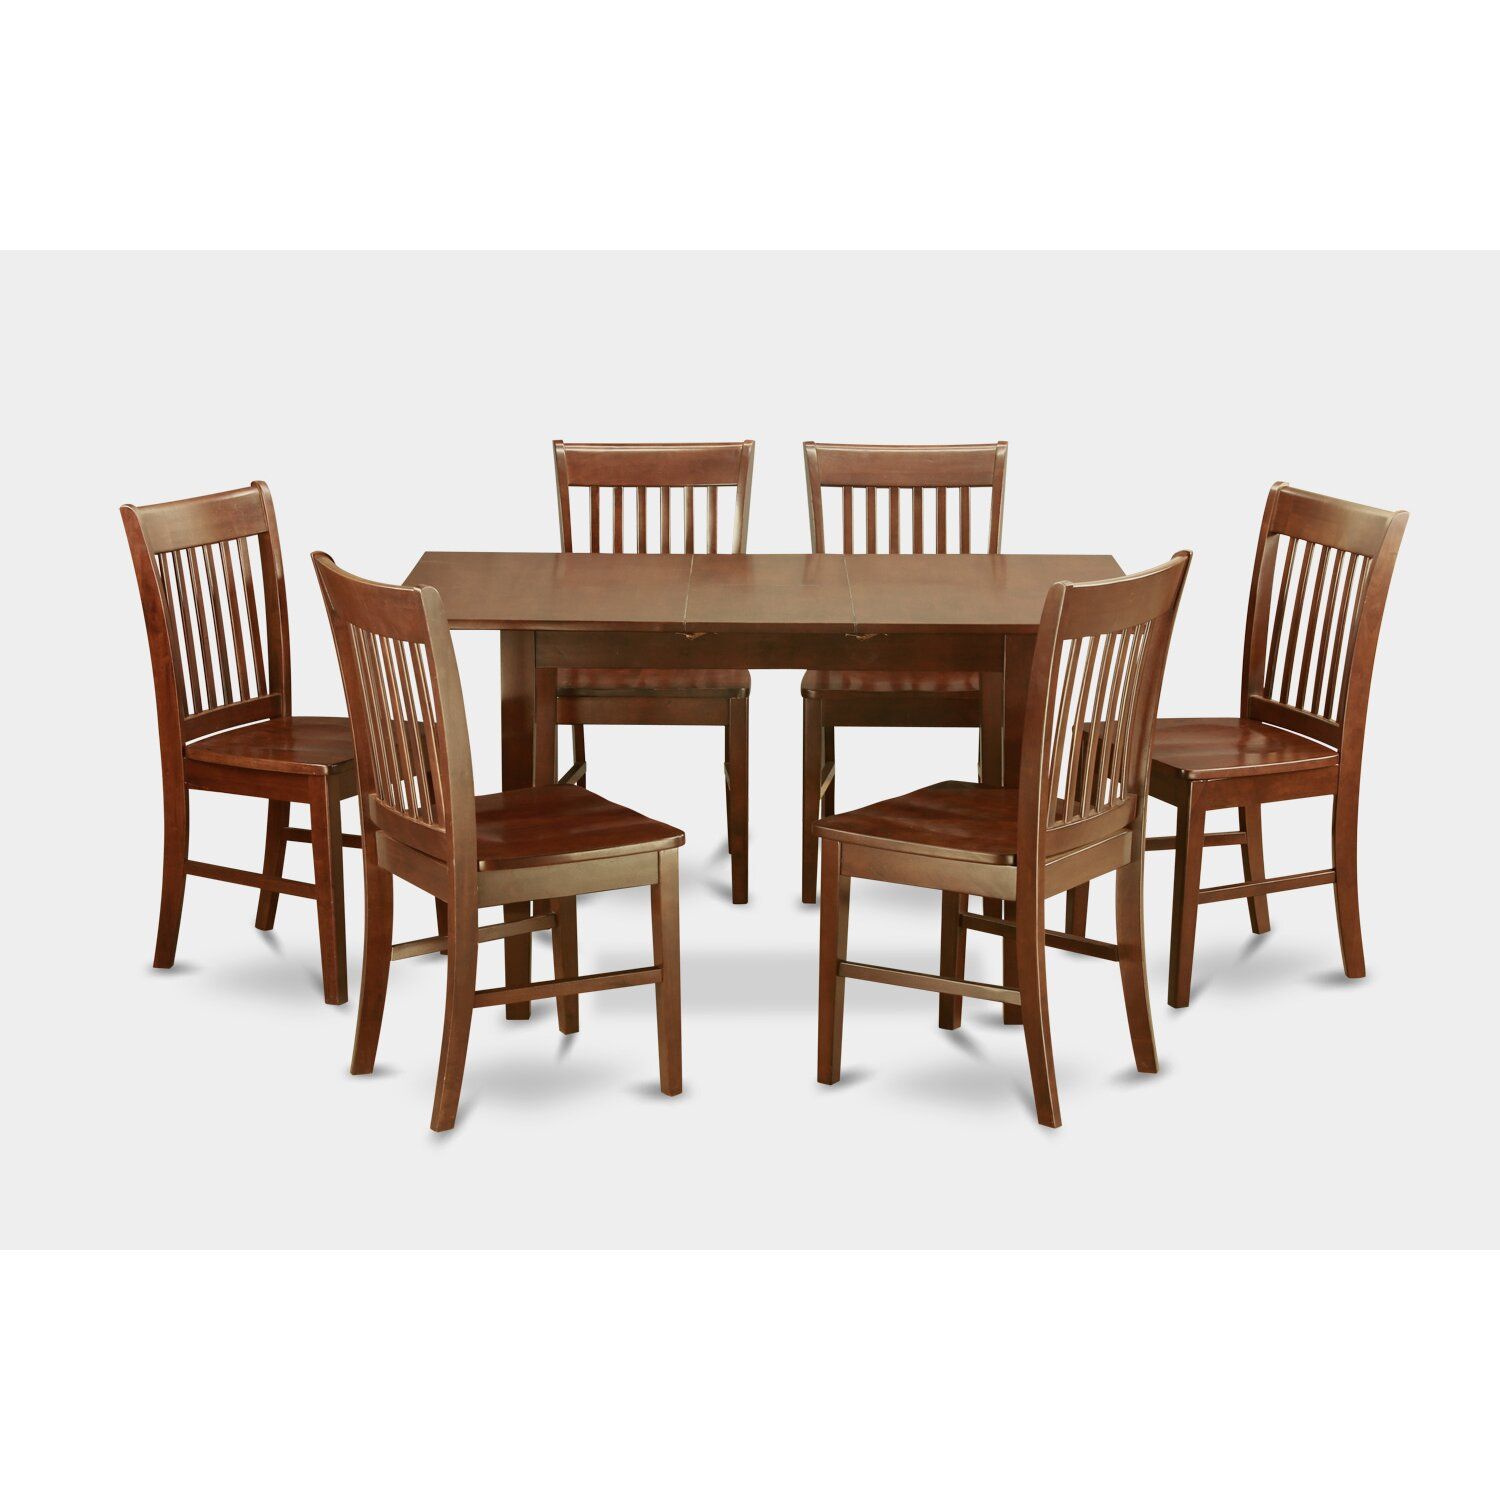 east west norfolk 7 piece dining set reviews wayfair